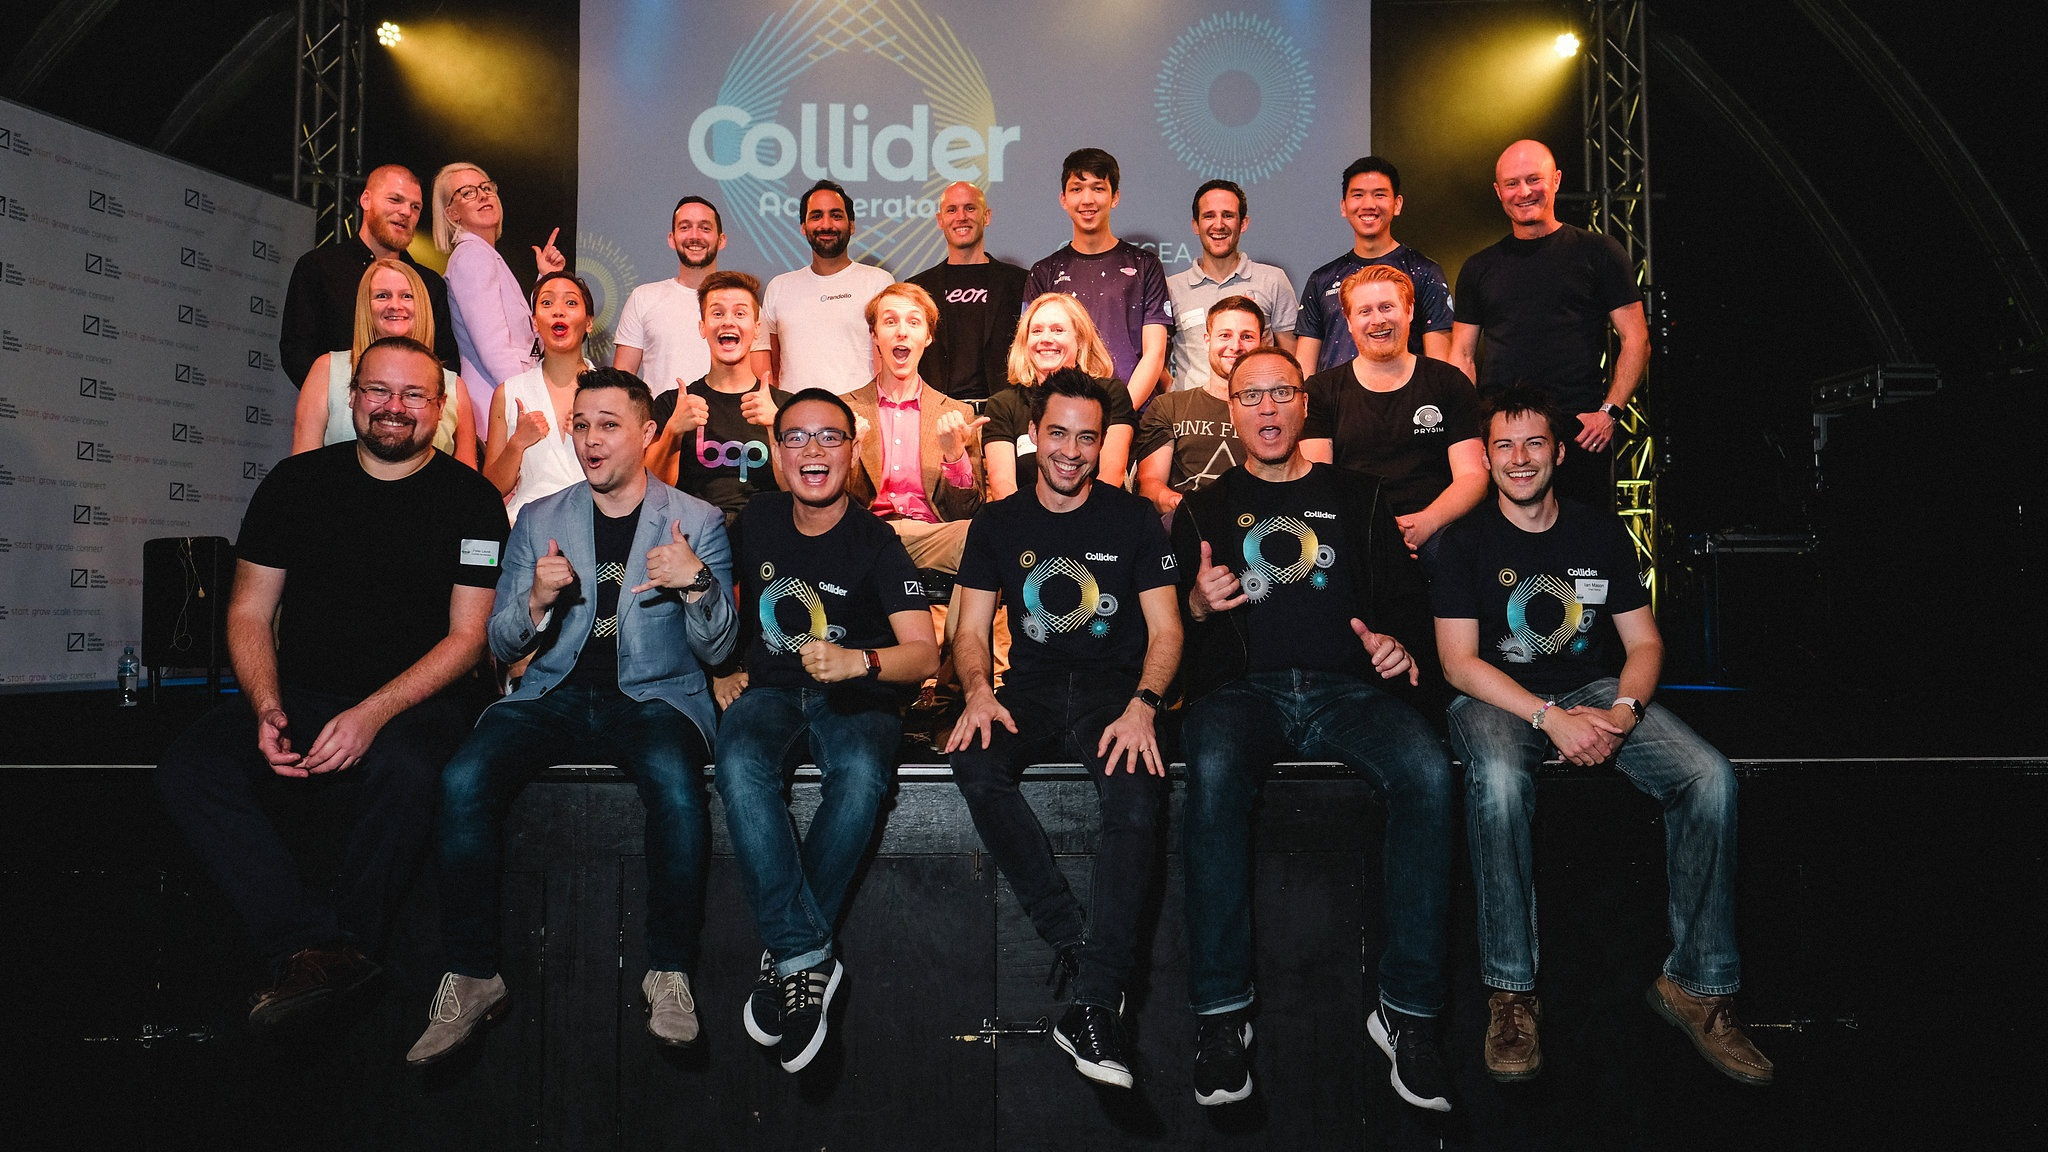 Brisbane's other Shark Tank: When technology and creativity collide   |  23 NOVEMBER 2018   The Shark Tank has made the startup sector hot property. And Steve Baxter's incubator isn't the only one in Brisbane doing cool stuff…    Read more